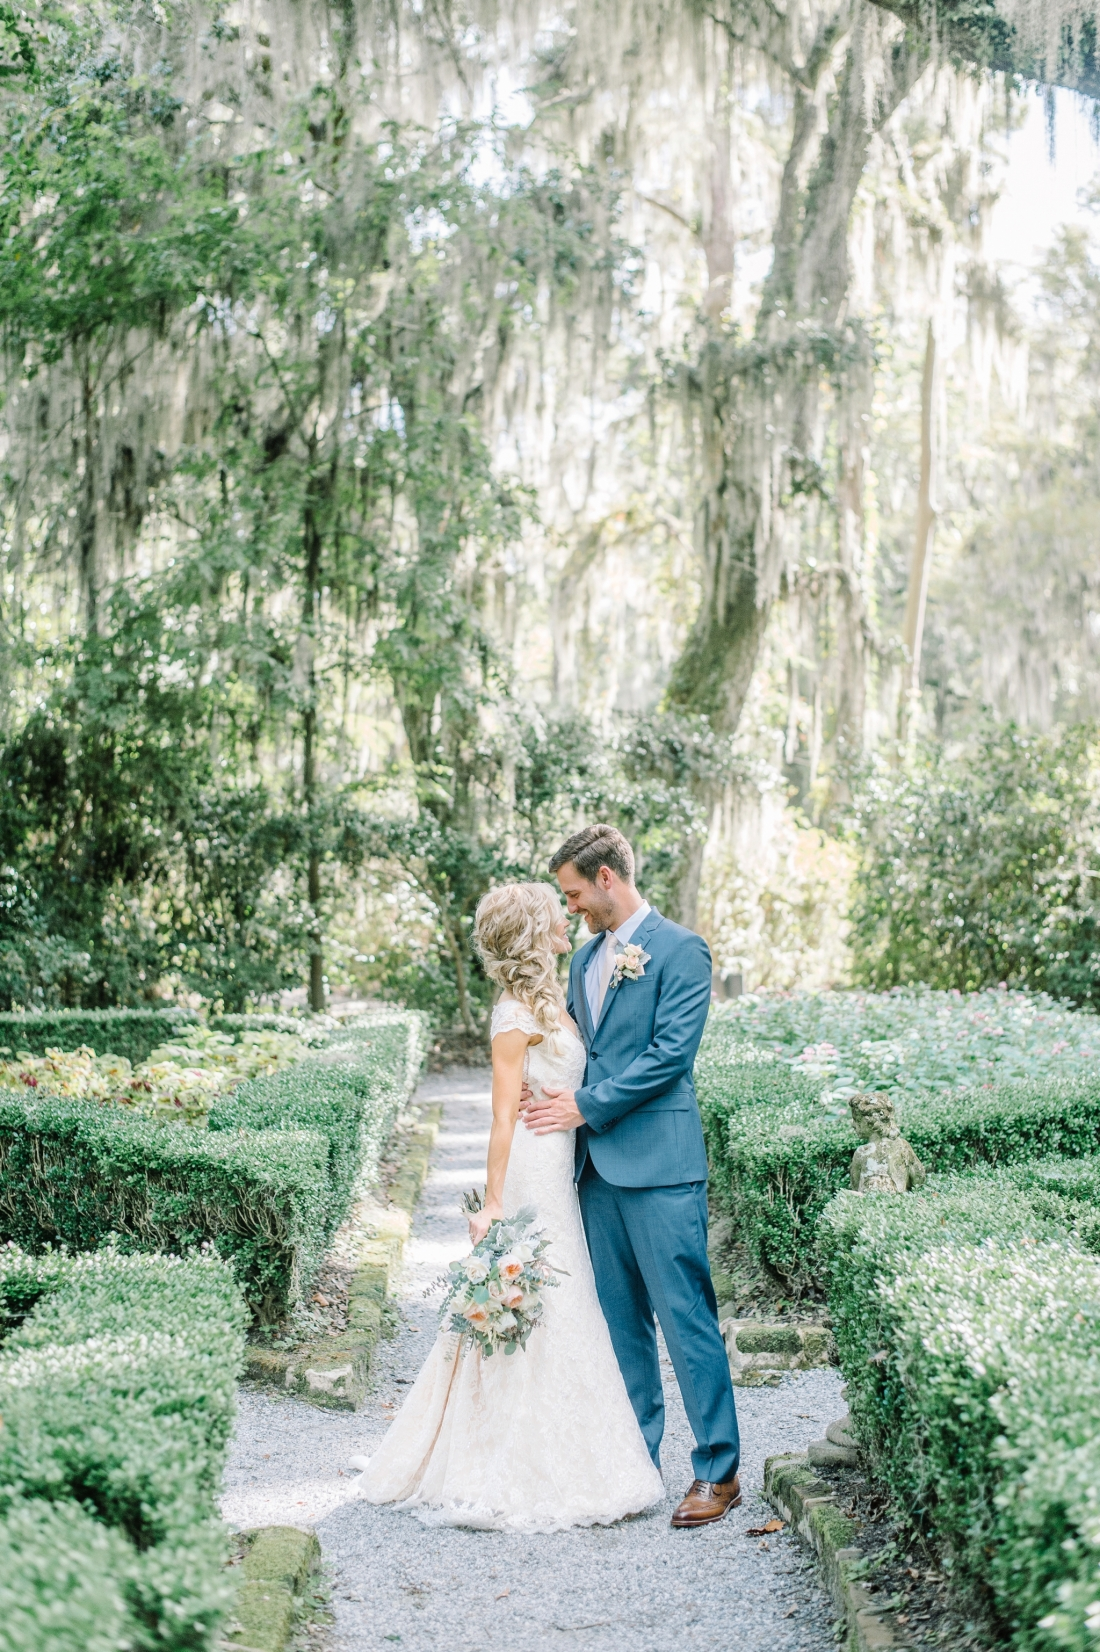 jermiah-and-shelbys-magnolia-plantation-wedding-in-charleston-by-charleston-wedding-photographers-aaron-and-jillian-photography-_0006